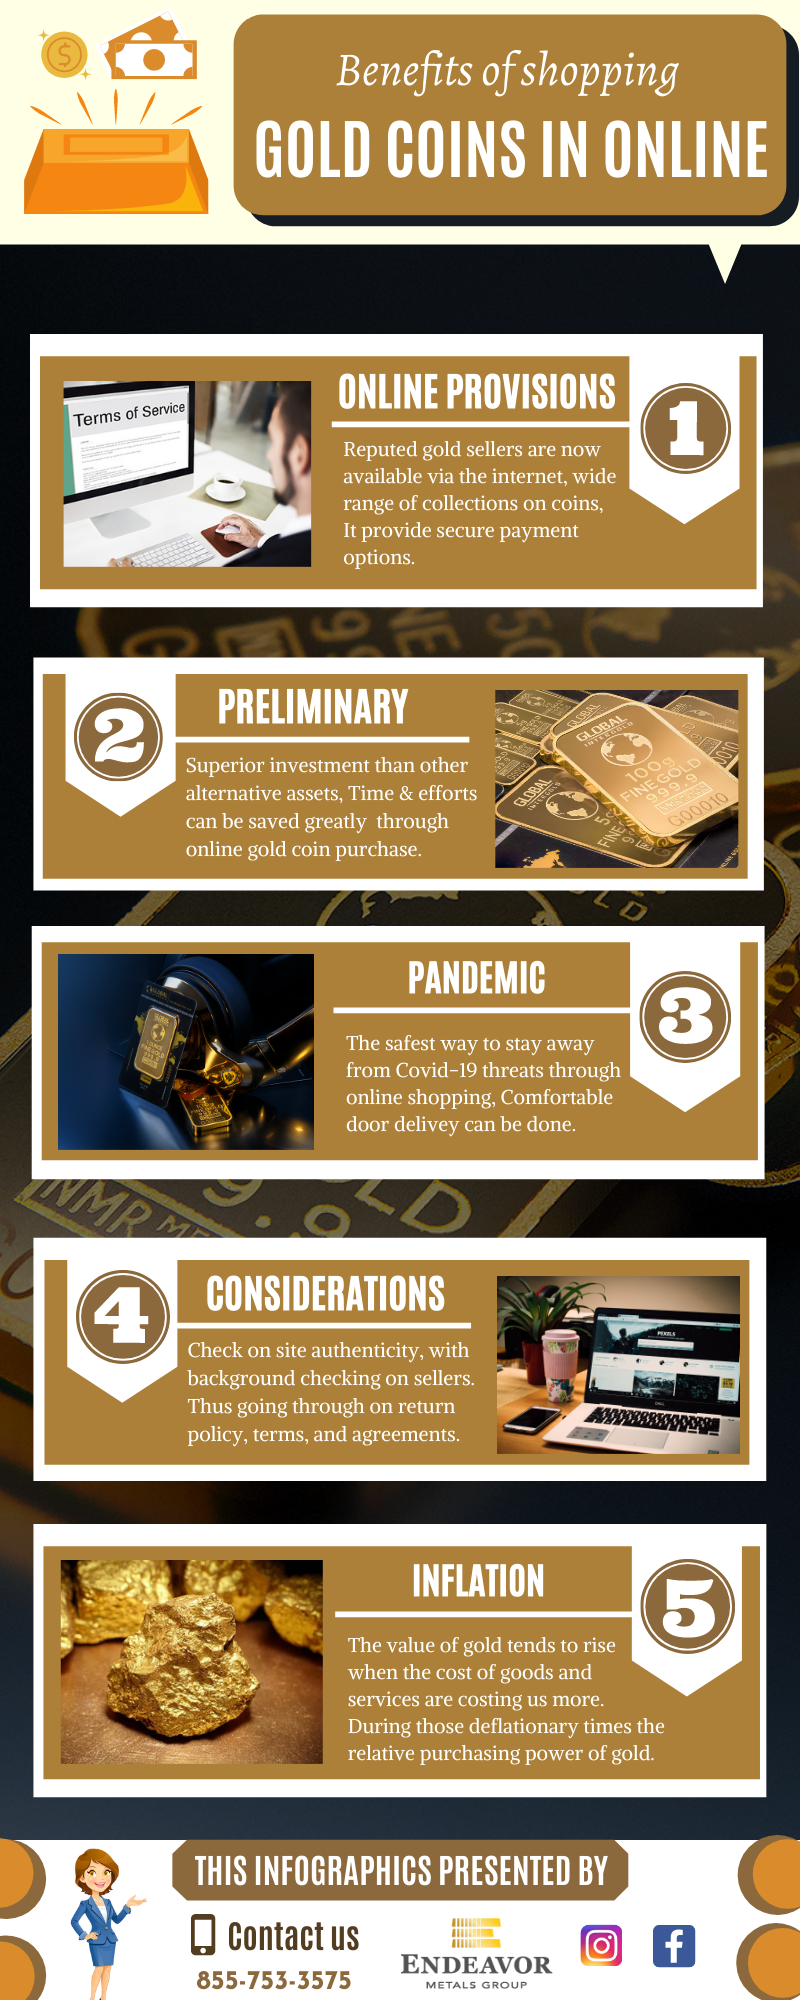 Get the Best Price on Gold Bars